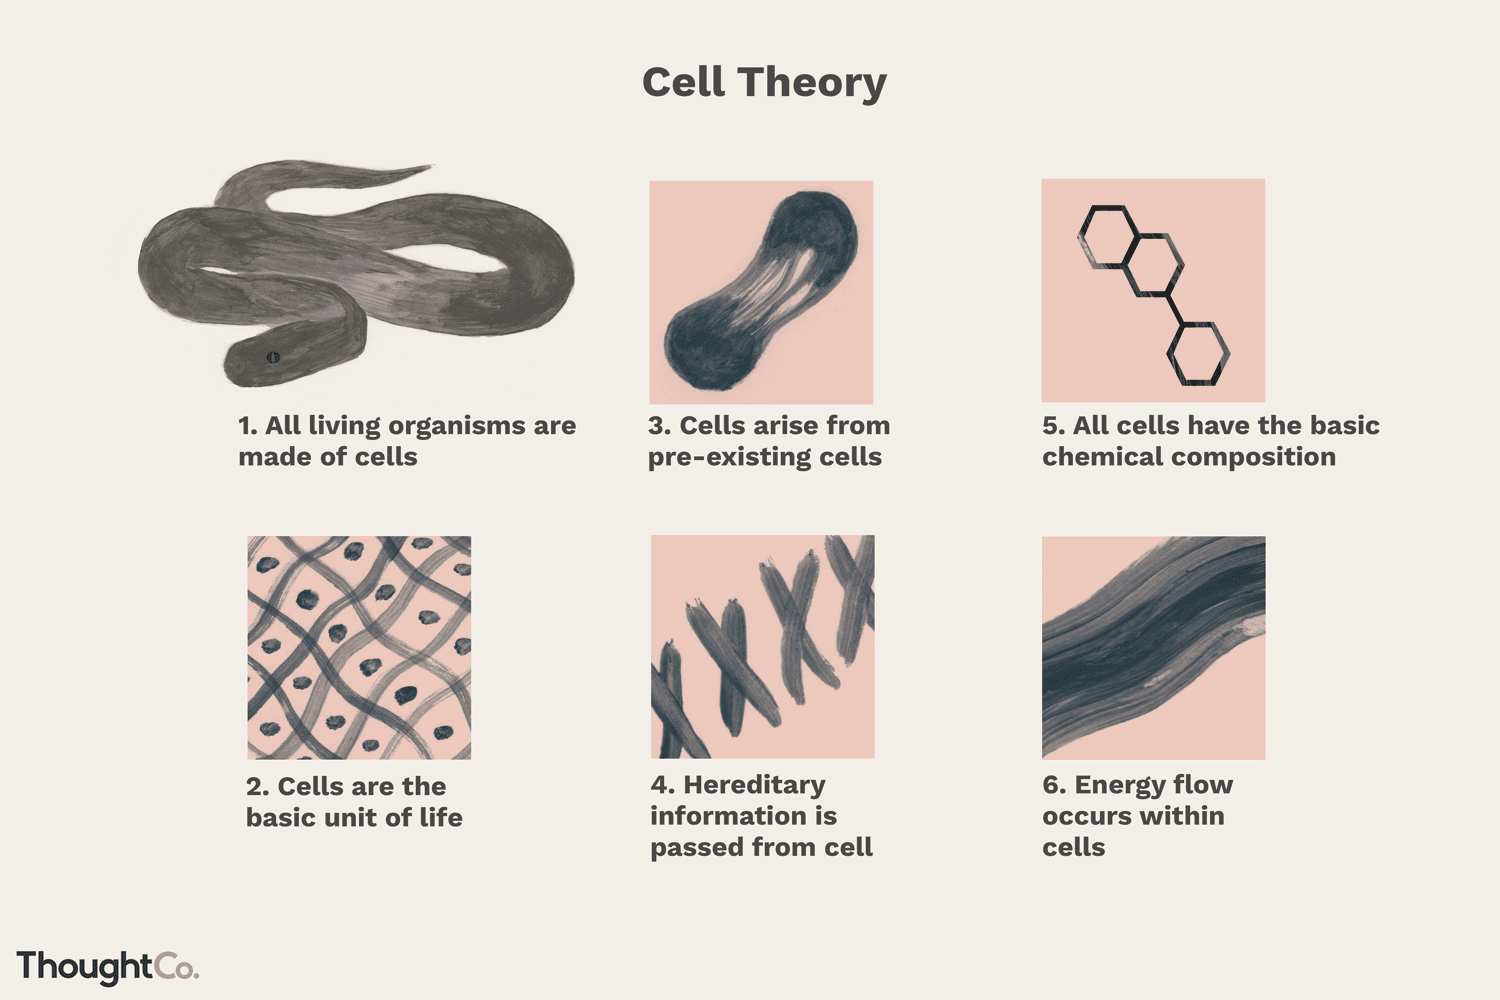 Cell Theory: A Core Principle of Biology